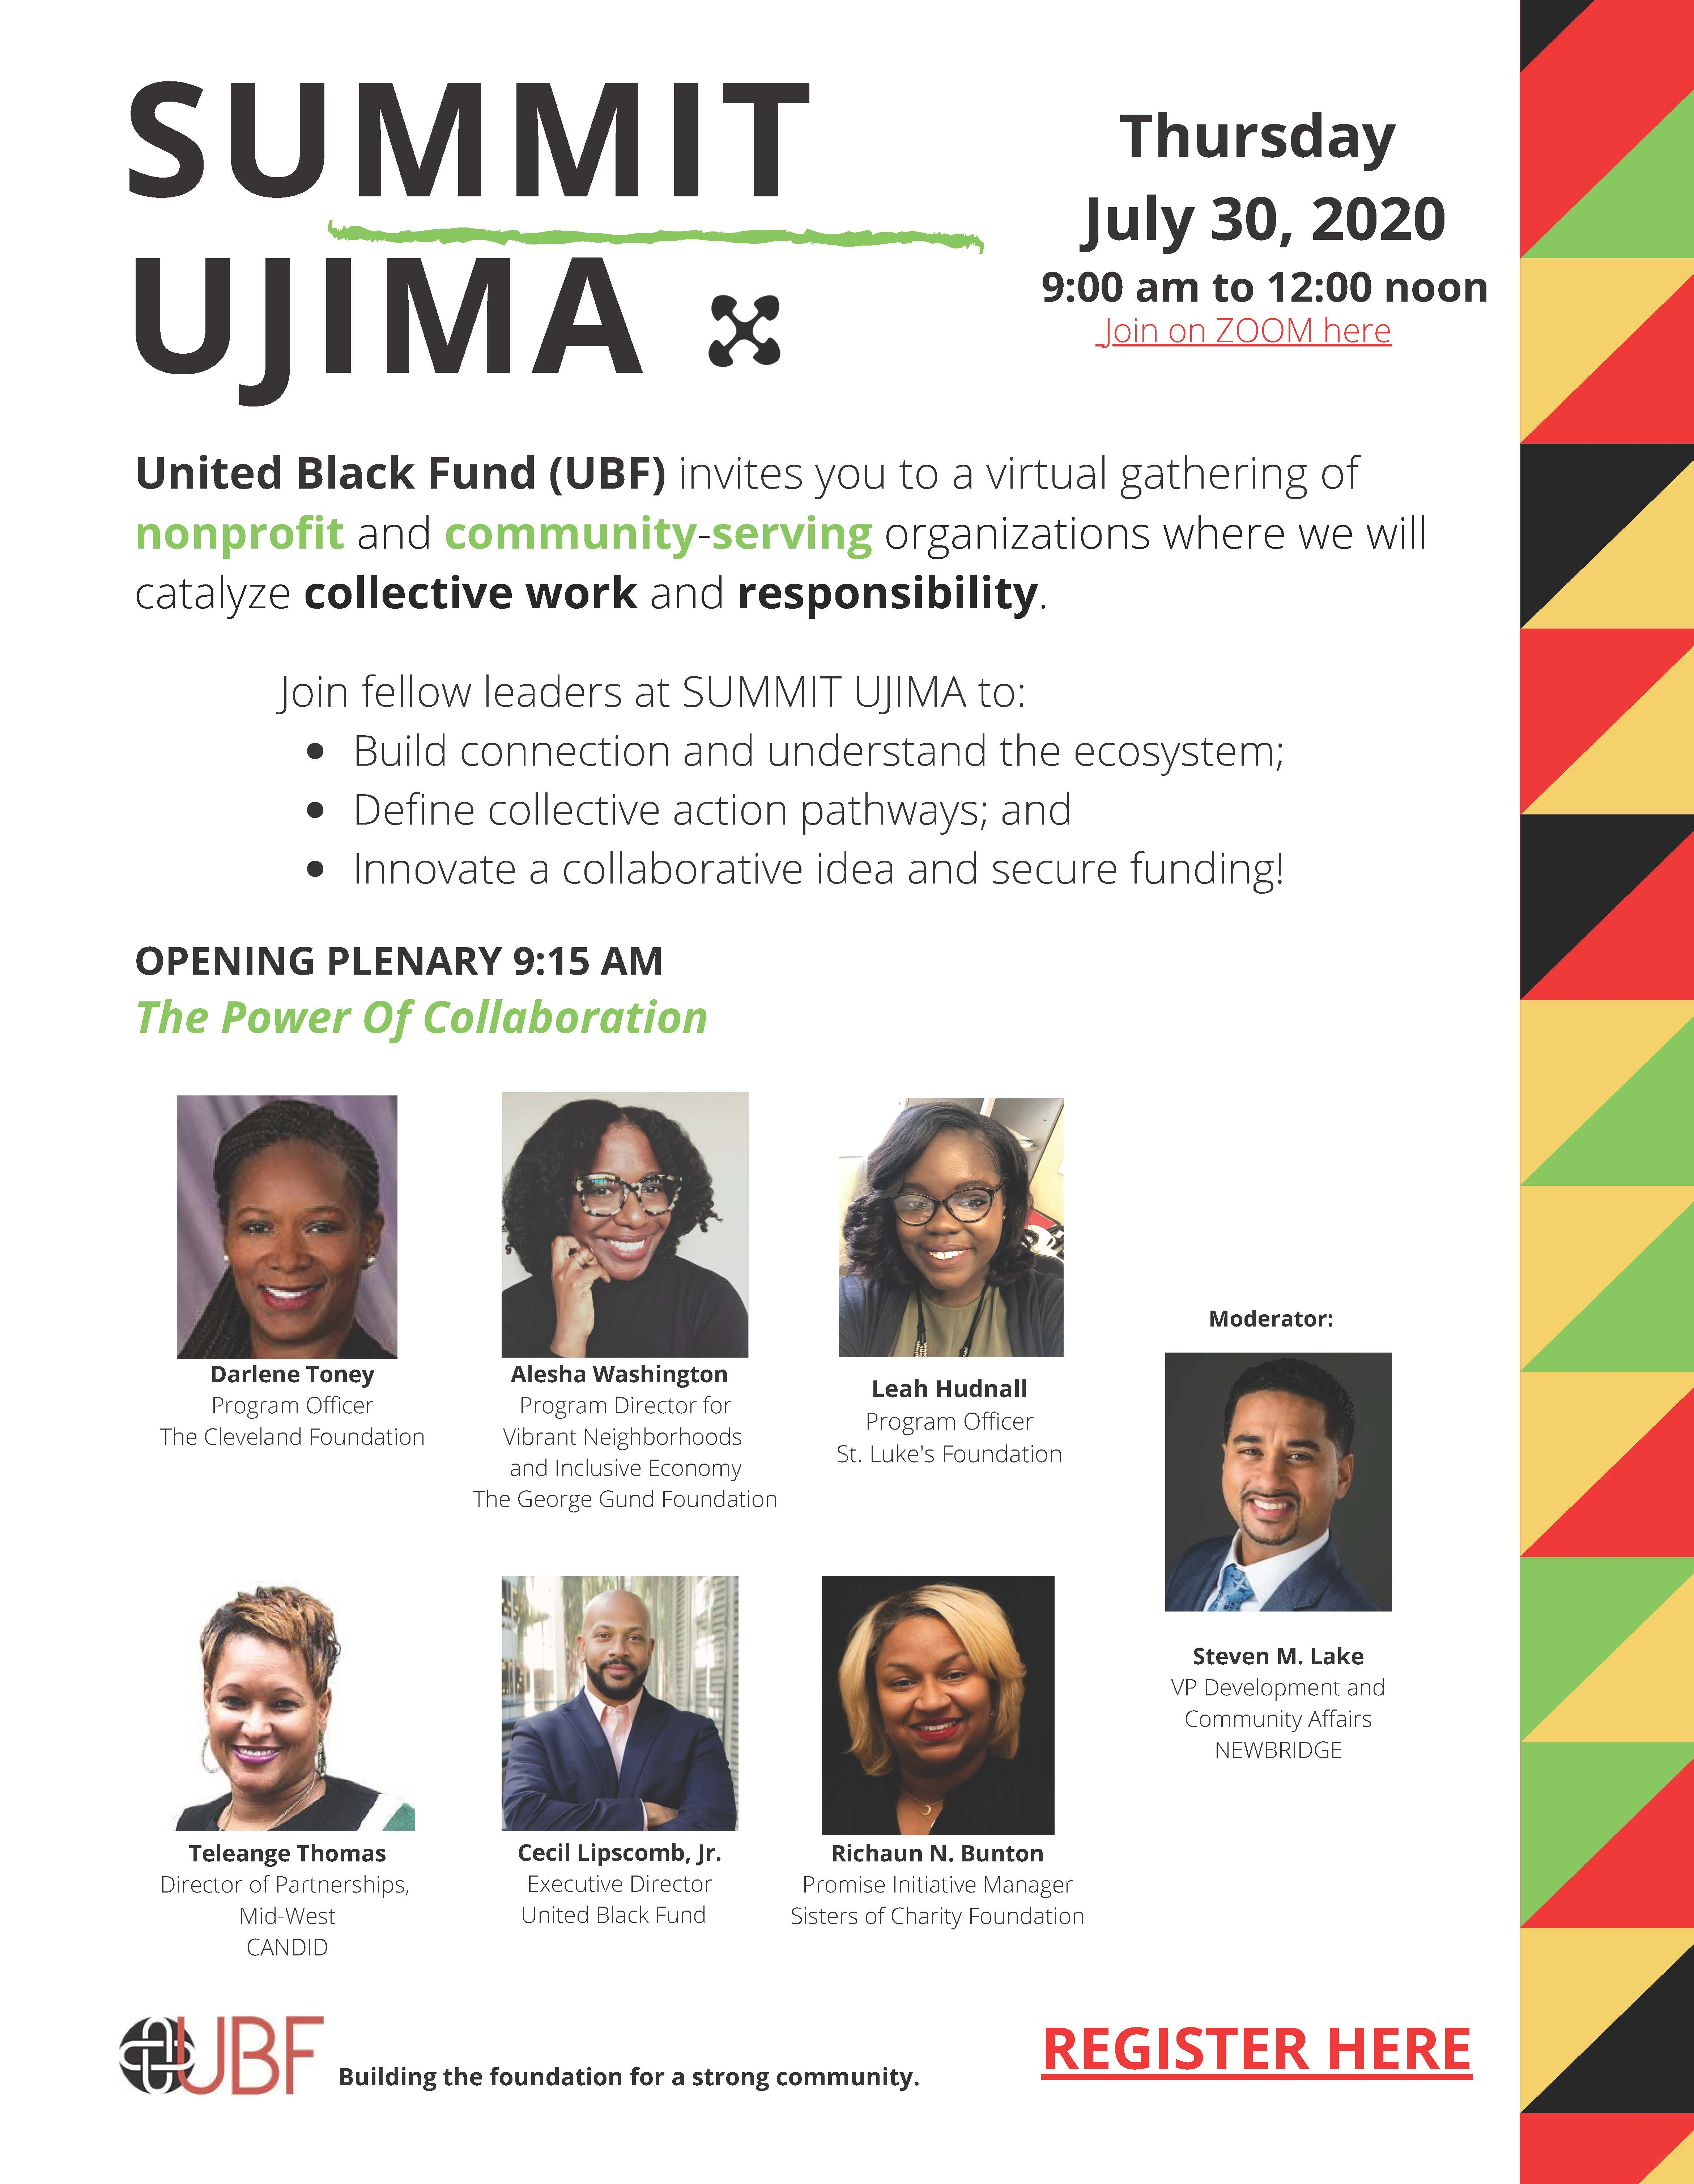 SUMMIT UJIMA Thursday July 30, 2020 9:00 am to 12:00 noon Join on ZOOM. United Black Fund (UBF) invites you to a virtual gathering of nonprofit and community-serving, organizations where we will catalyze collective work and responsibility. Join fellow leaders at SUMMIT UJIMA to: • Build connection and understand the ecosystem; • Define collective action pathways; and • Innovate a collaborative idea and secure funding! OPENING PLENARY 9:15 AM The Power Of Collaboration Participants: Darlene Toney Program Officer The Cleveland Foundation Teleange Thomas Director of Partnerships, Mid-West CANDID Alesha Washington Program Director for Vibrant Neighborhoods and Inclusive Economy The George Gund Foundation Cecil Lipscomb, Jr. Executive Director United Black Fund Leah Hudnall Program Officer St. Luke's Foundation Richaun N. Bunton Promise Initiative Manager Sisters of Charity Foundation Moderator: Steven M. Lake VP Development and Community Affairs NEWBRIDGE